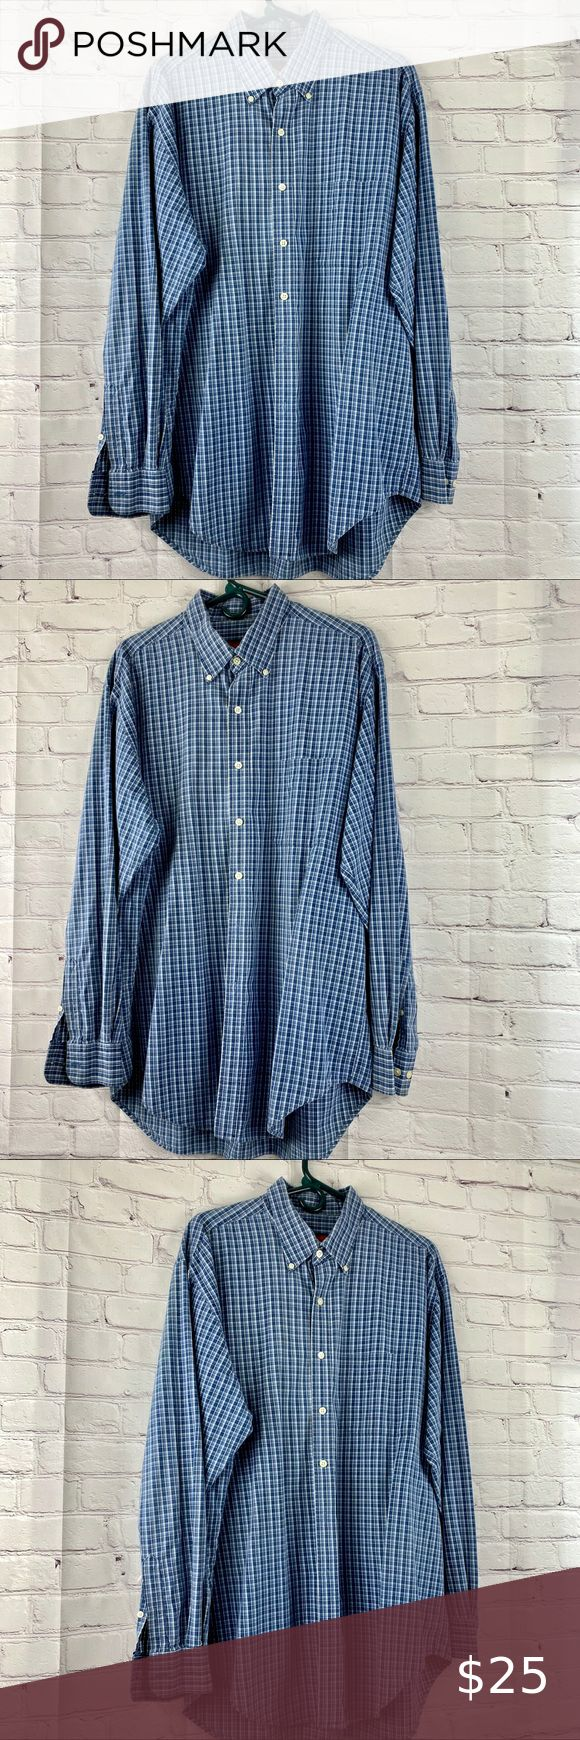 Austin Reed Blue Checkered Shirt In 2020 Blue Checkered Shirt Blue Checkered Checkered Dress